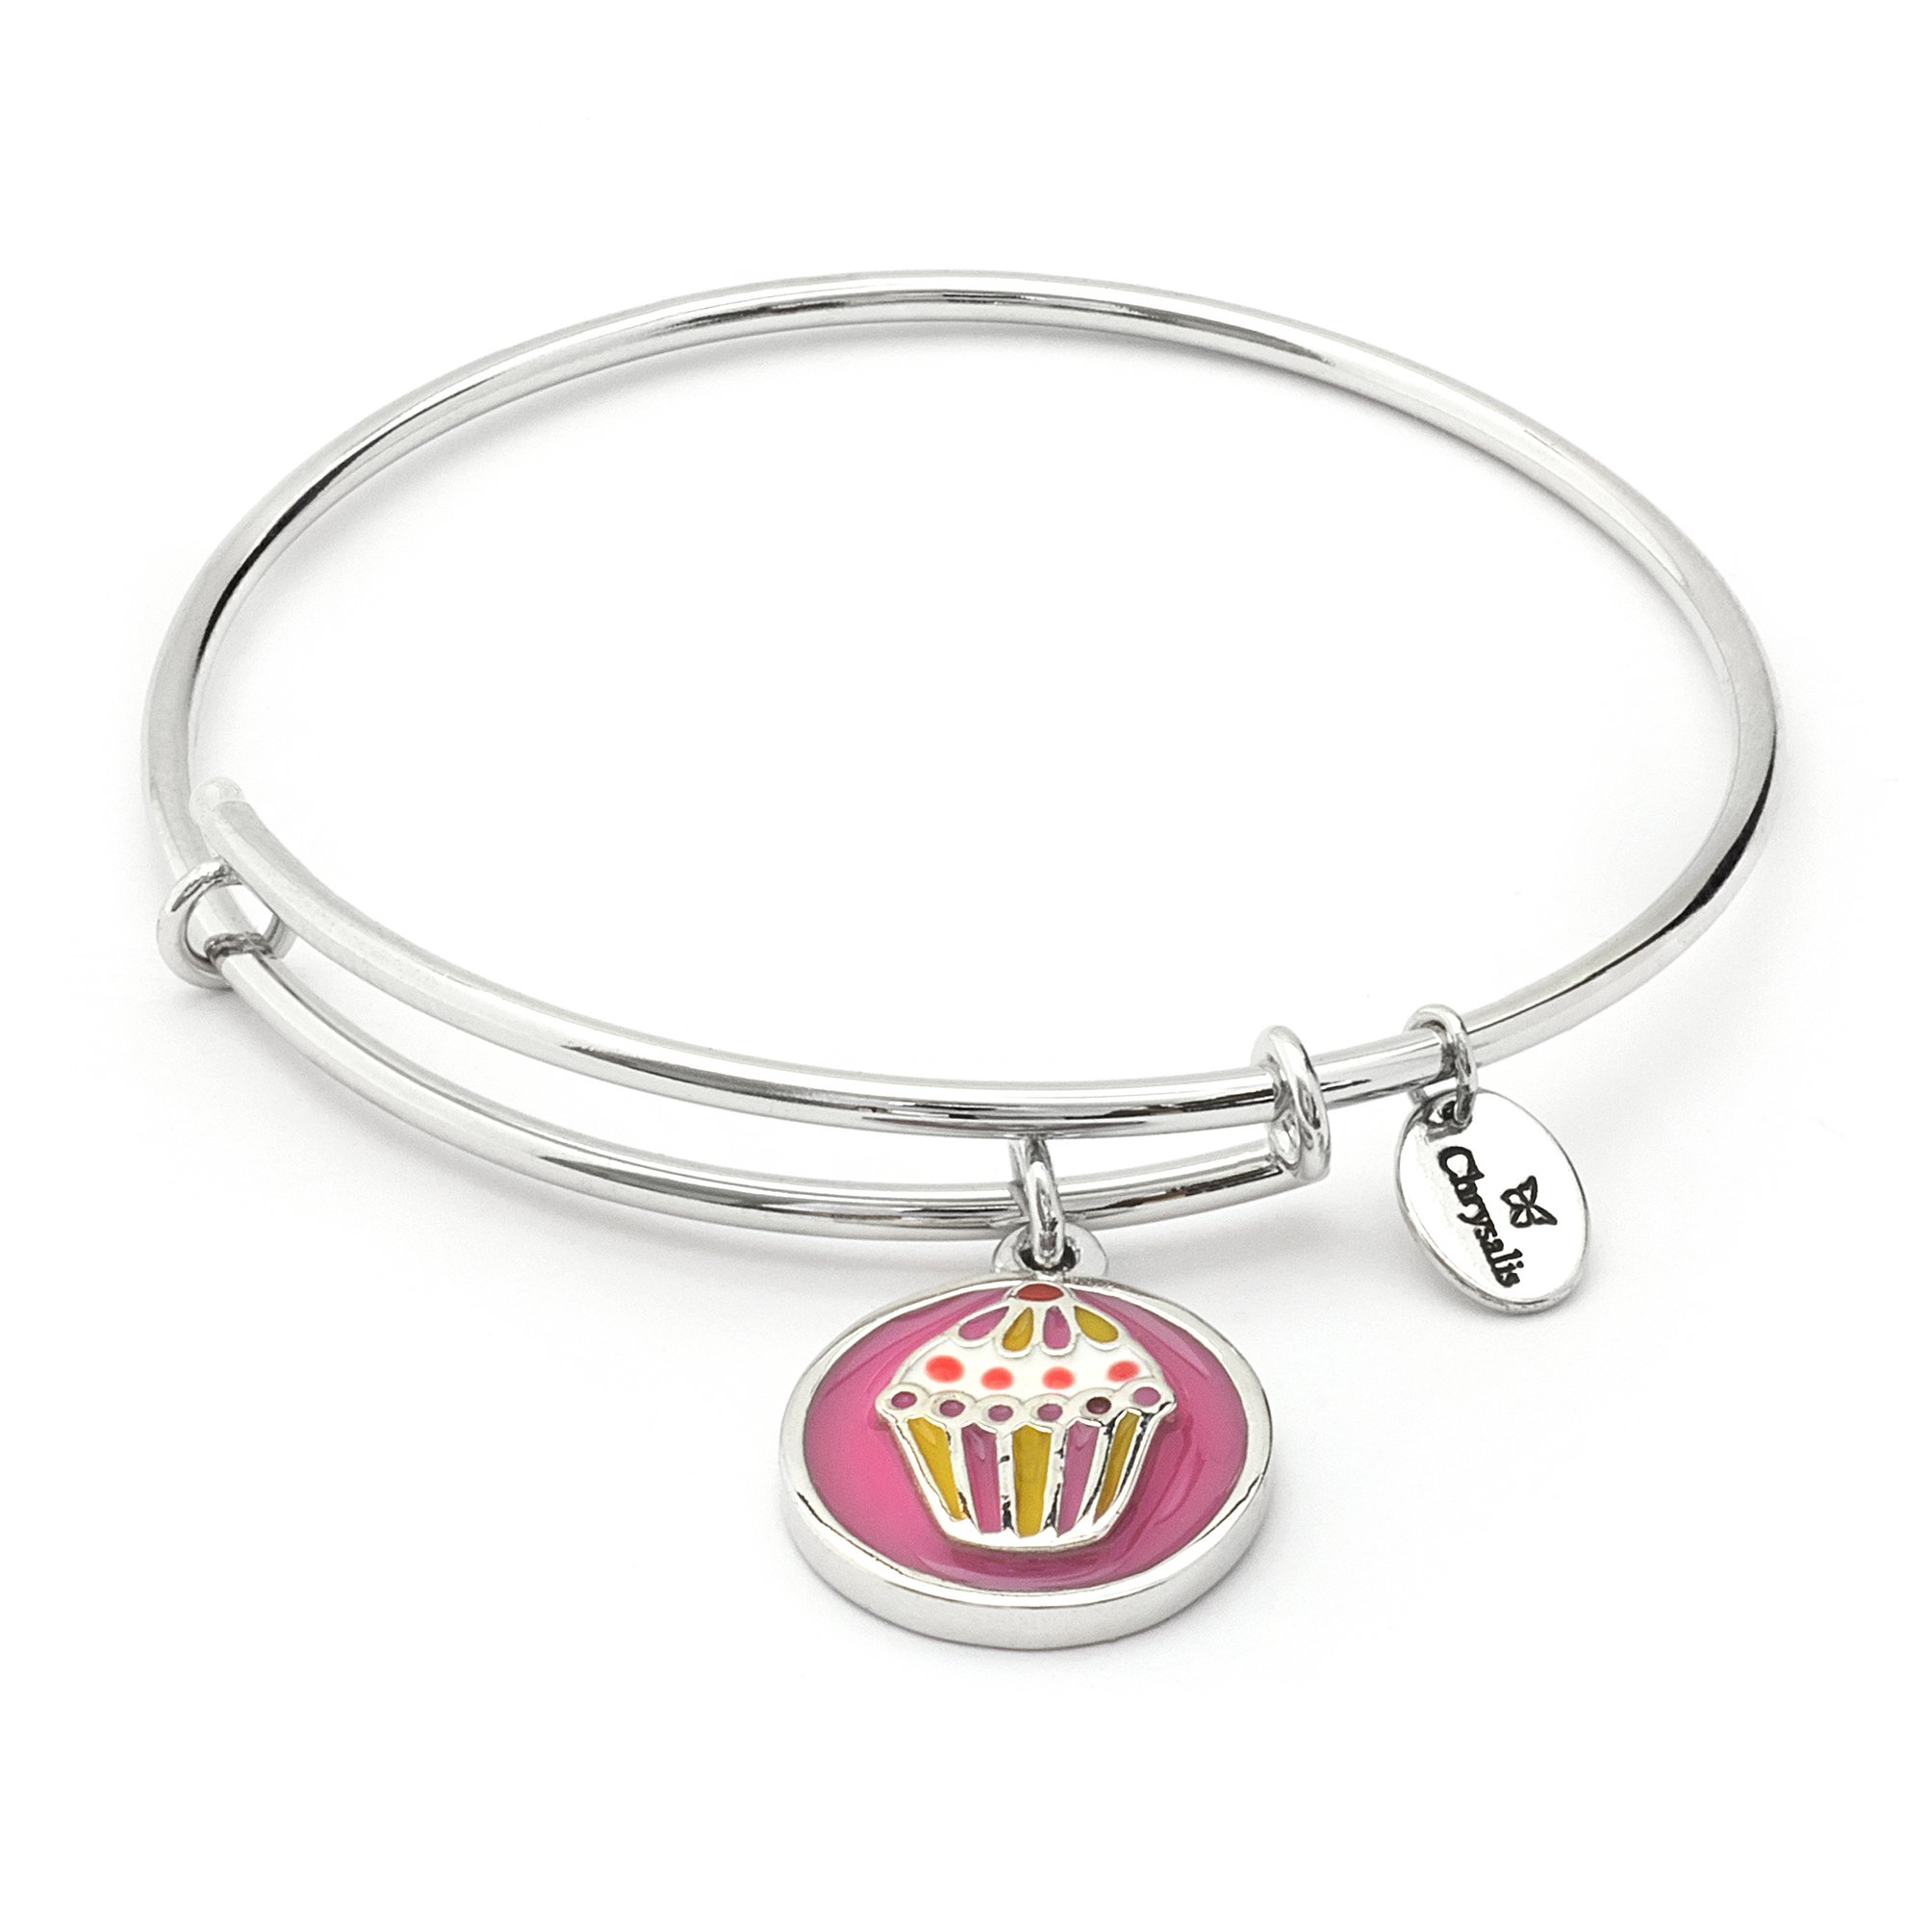 Cute Summer Cupcake Charm Stackable Expandable Bangle Bracelet for Girls & Kids,Silver Pink Colorful